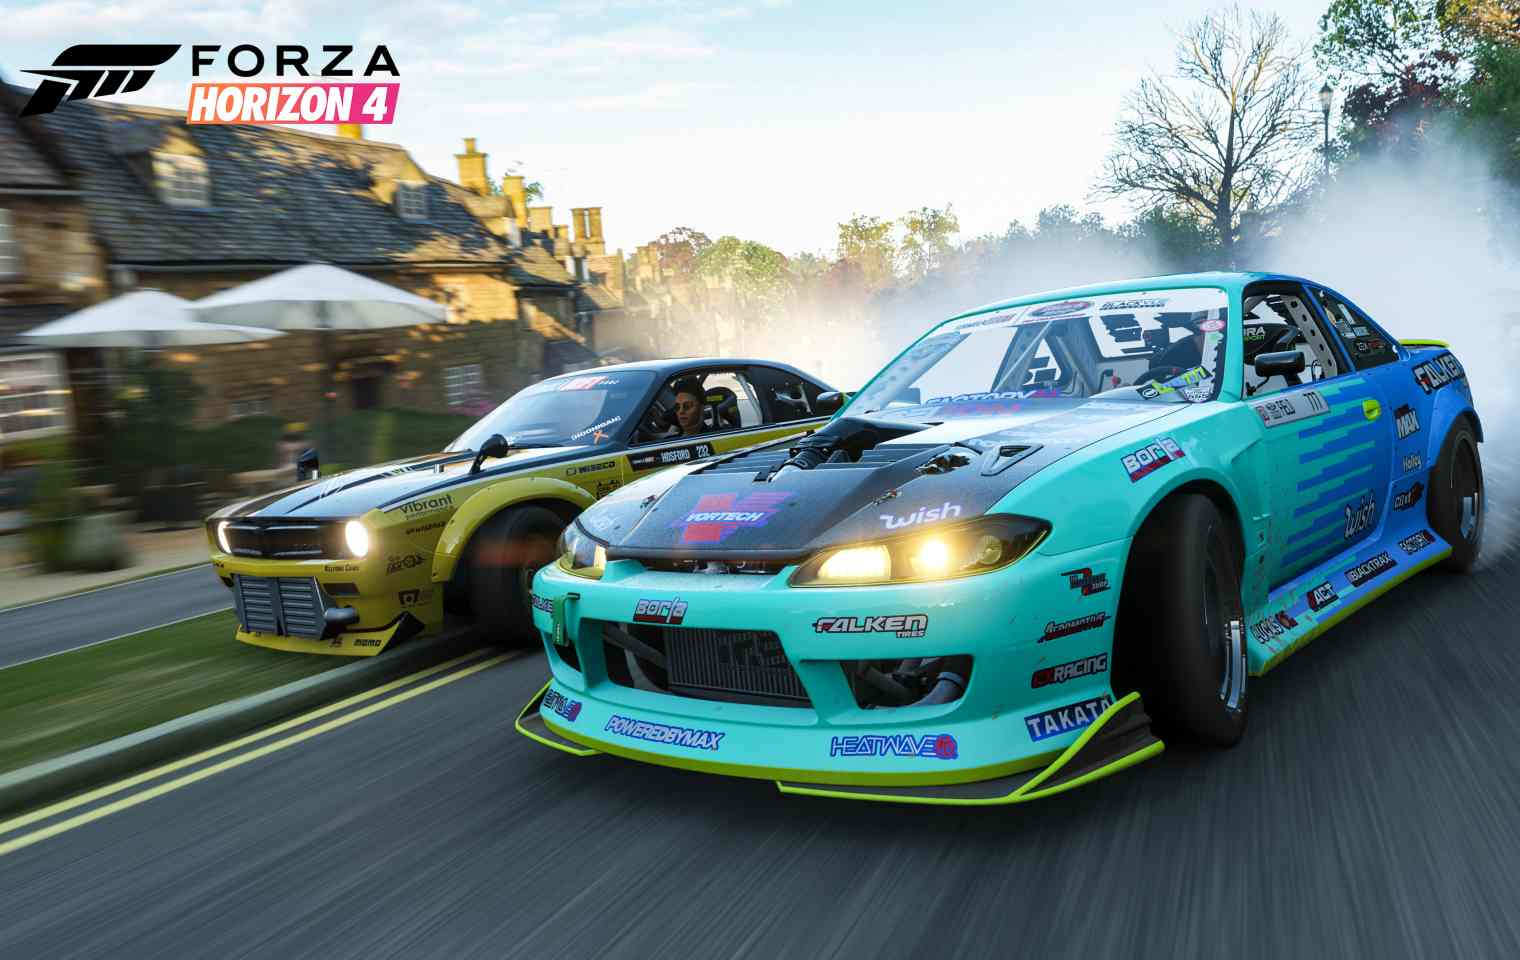 forza horizon 4 im test so gut ist das spiel f r xbox. Black Bedroom Furniture Sets. Home Design Ideas